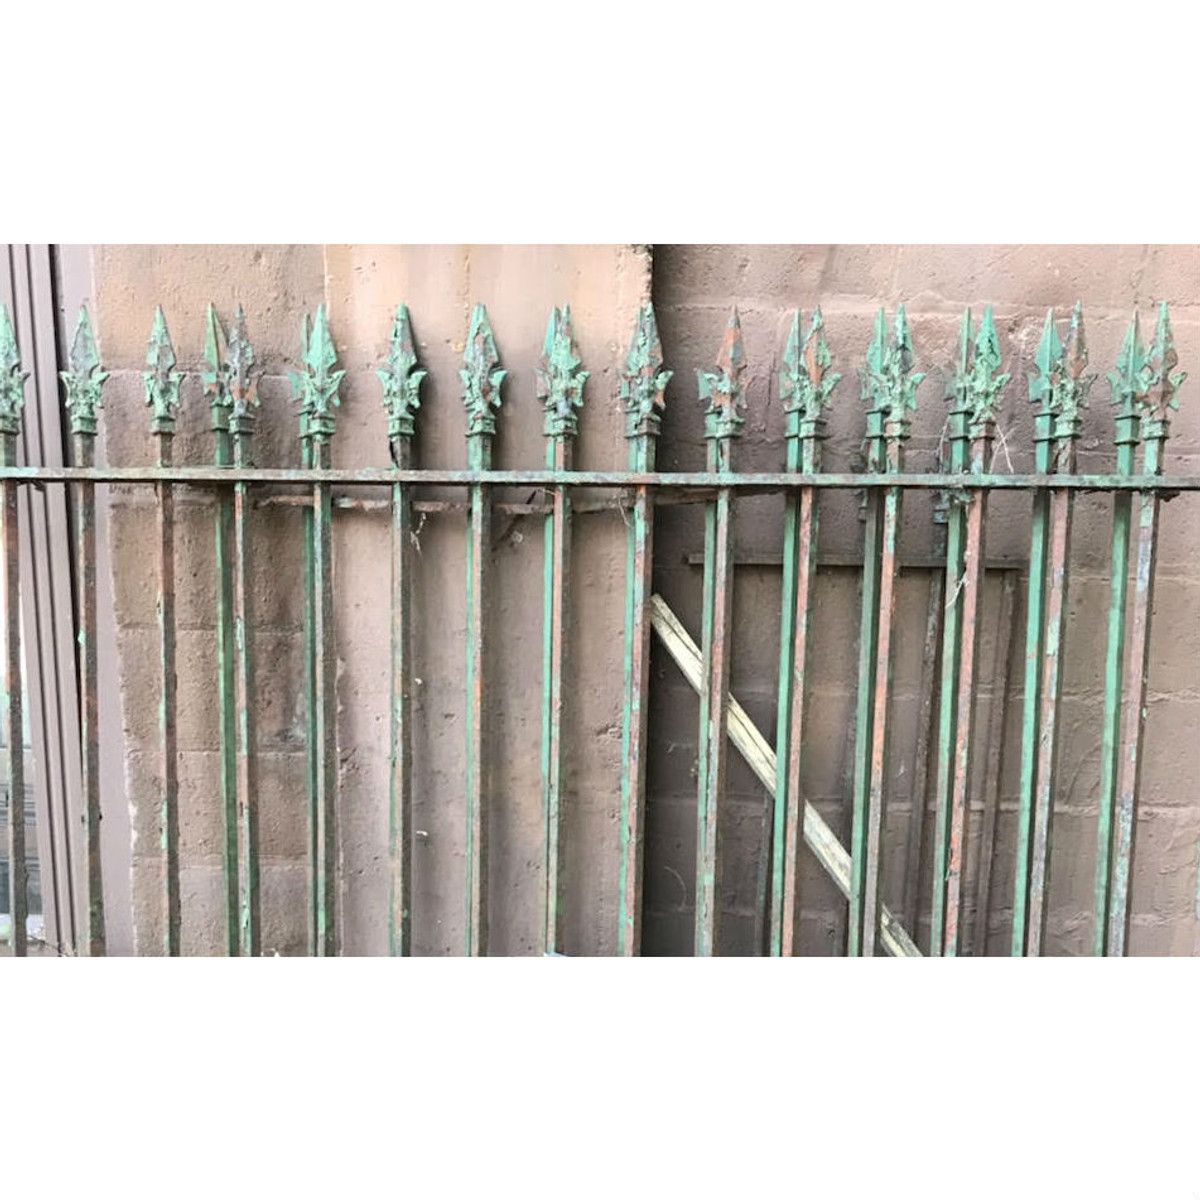 S19026 - Antique Cast & Wrought Iron Fence Section